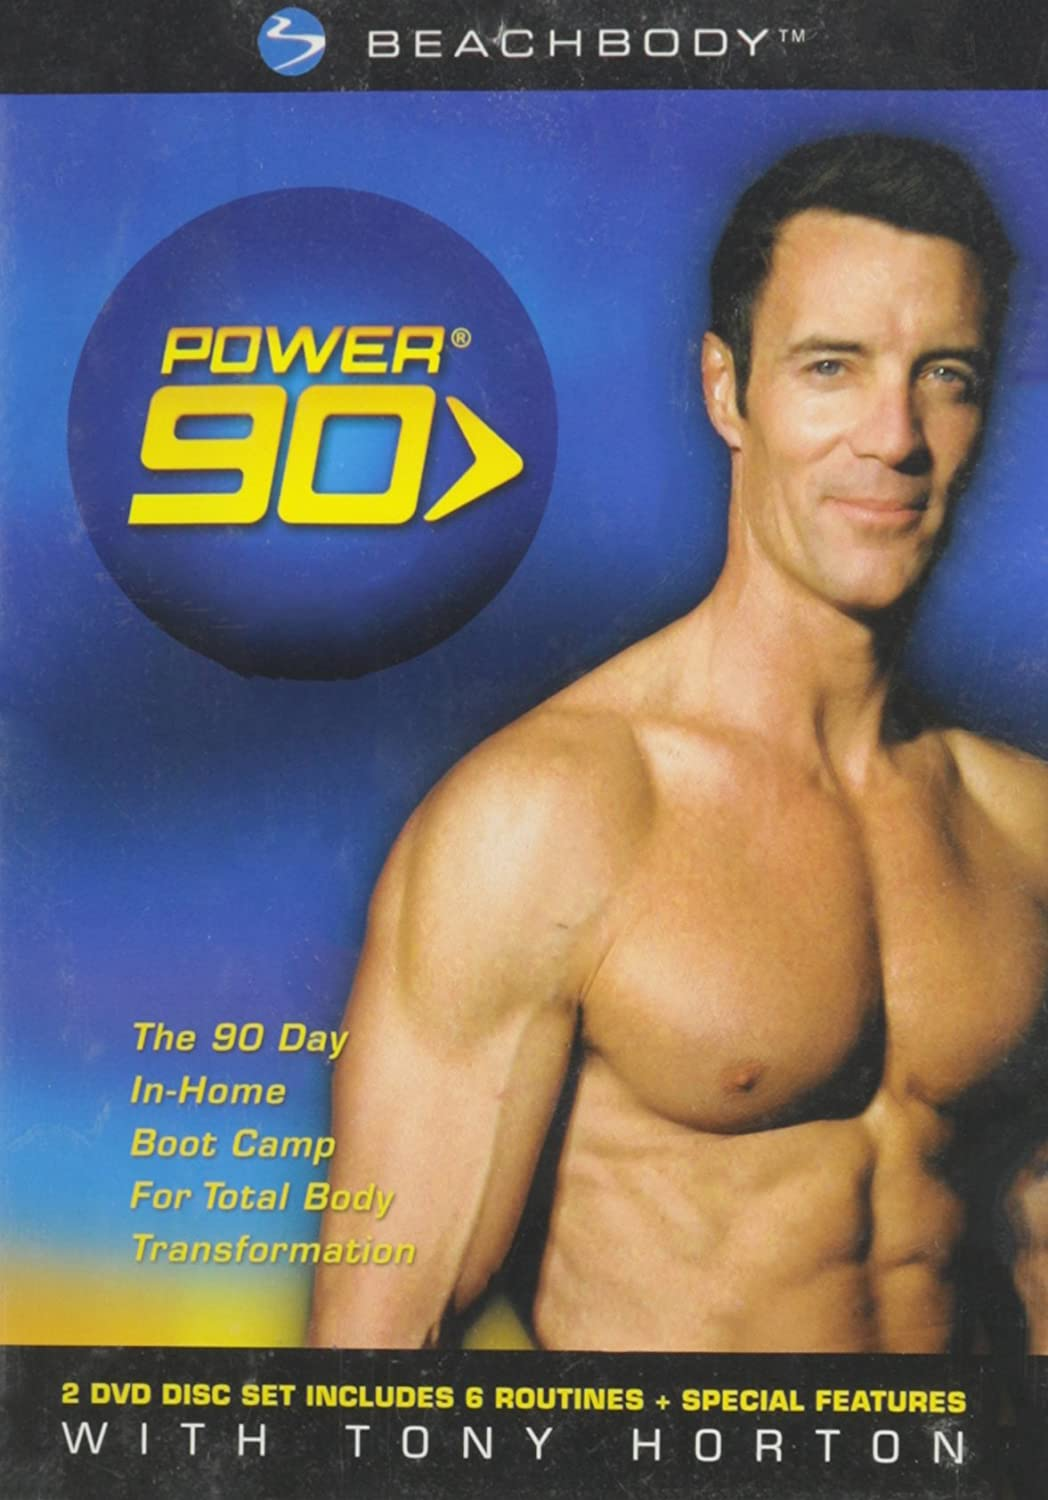 Amazon com: Power 90: Tony Horton (The 90 Day In-Home Boot Camp for